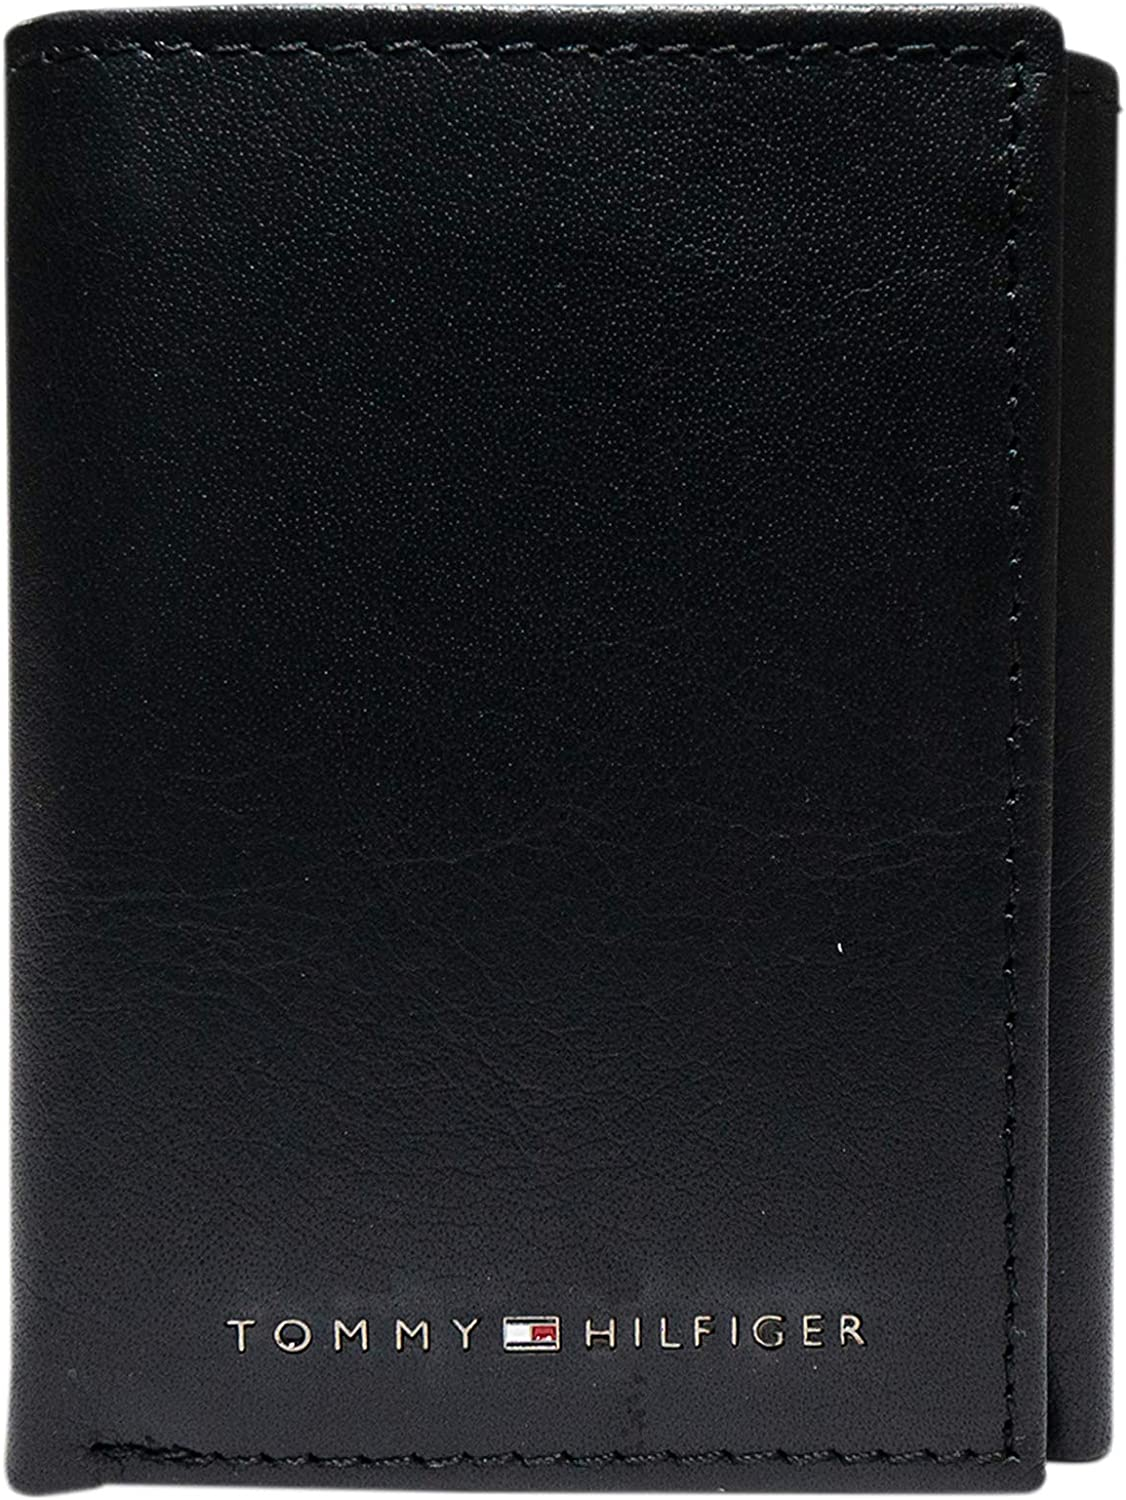 Tommy Hilfiger Men's Genuine Columbus Mall Leather Wind Max 85% OFF ID With Wallet Trifold